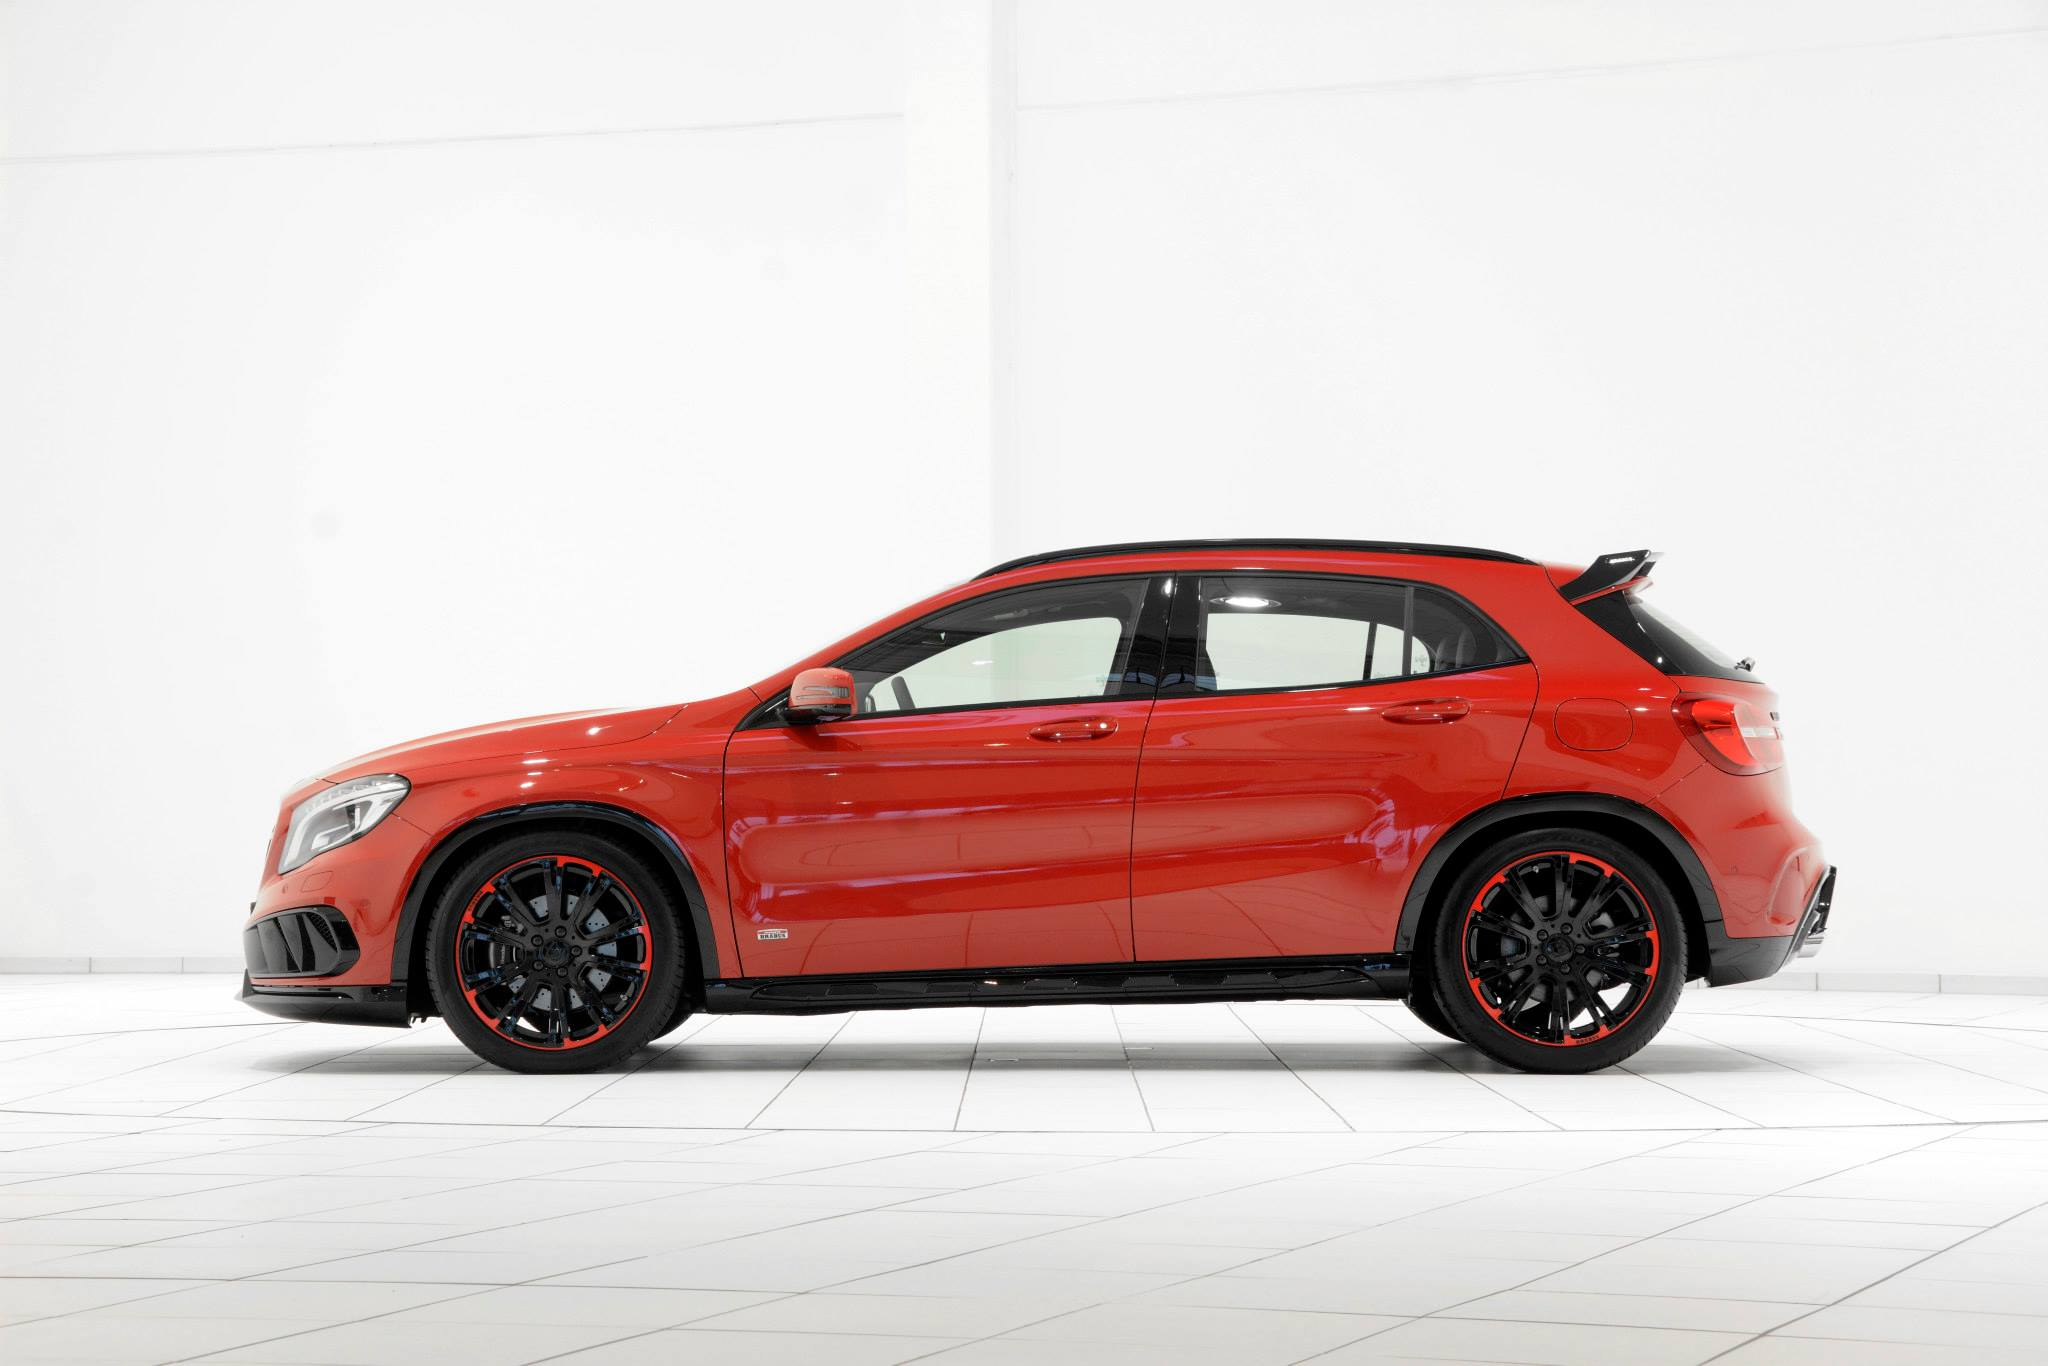 Mercedes Gla Tuned By Brabus Looks Stunning In Red And Black Gets